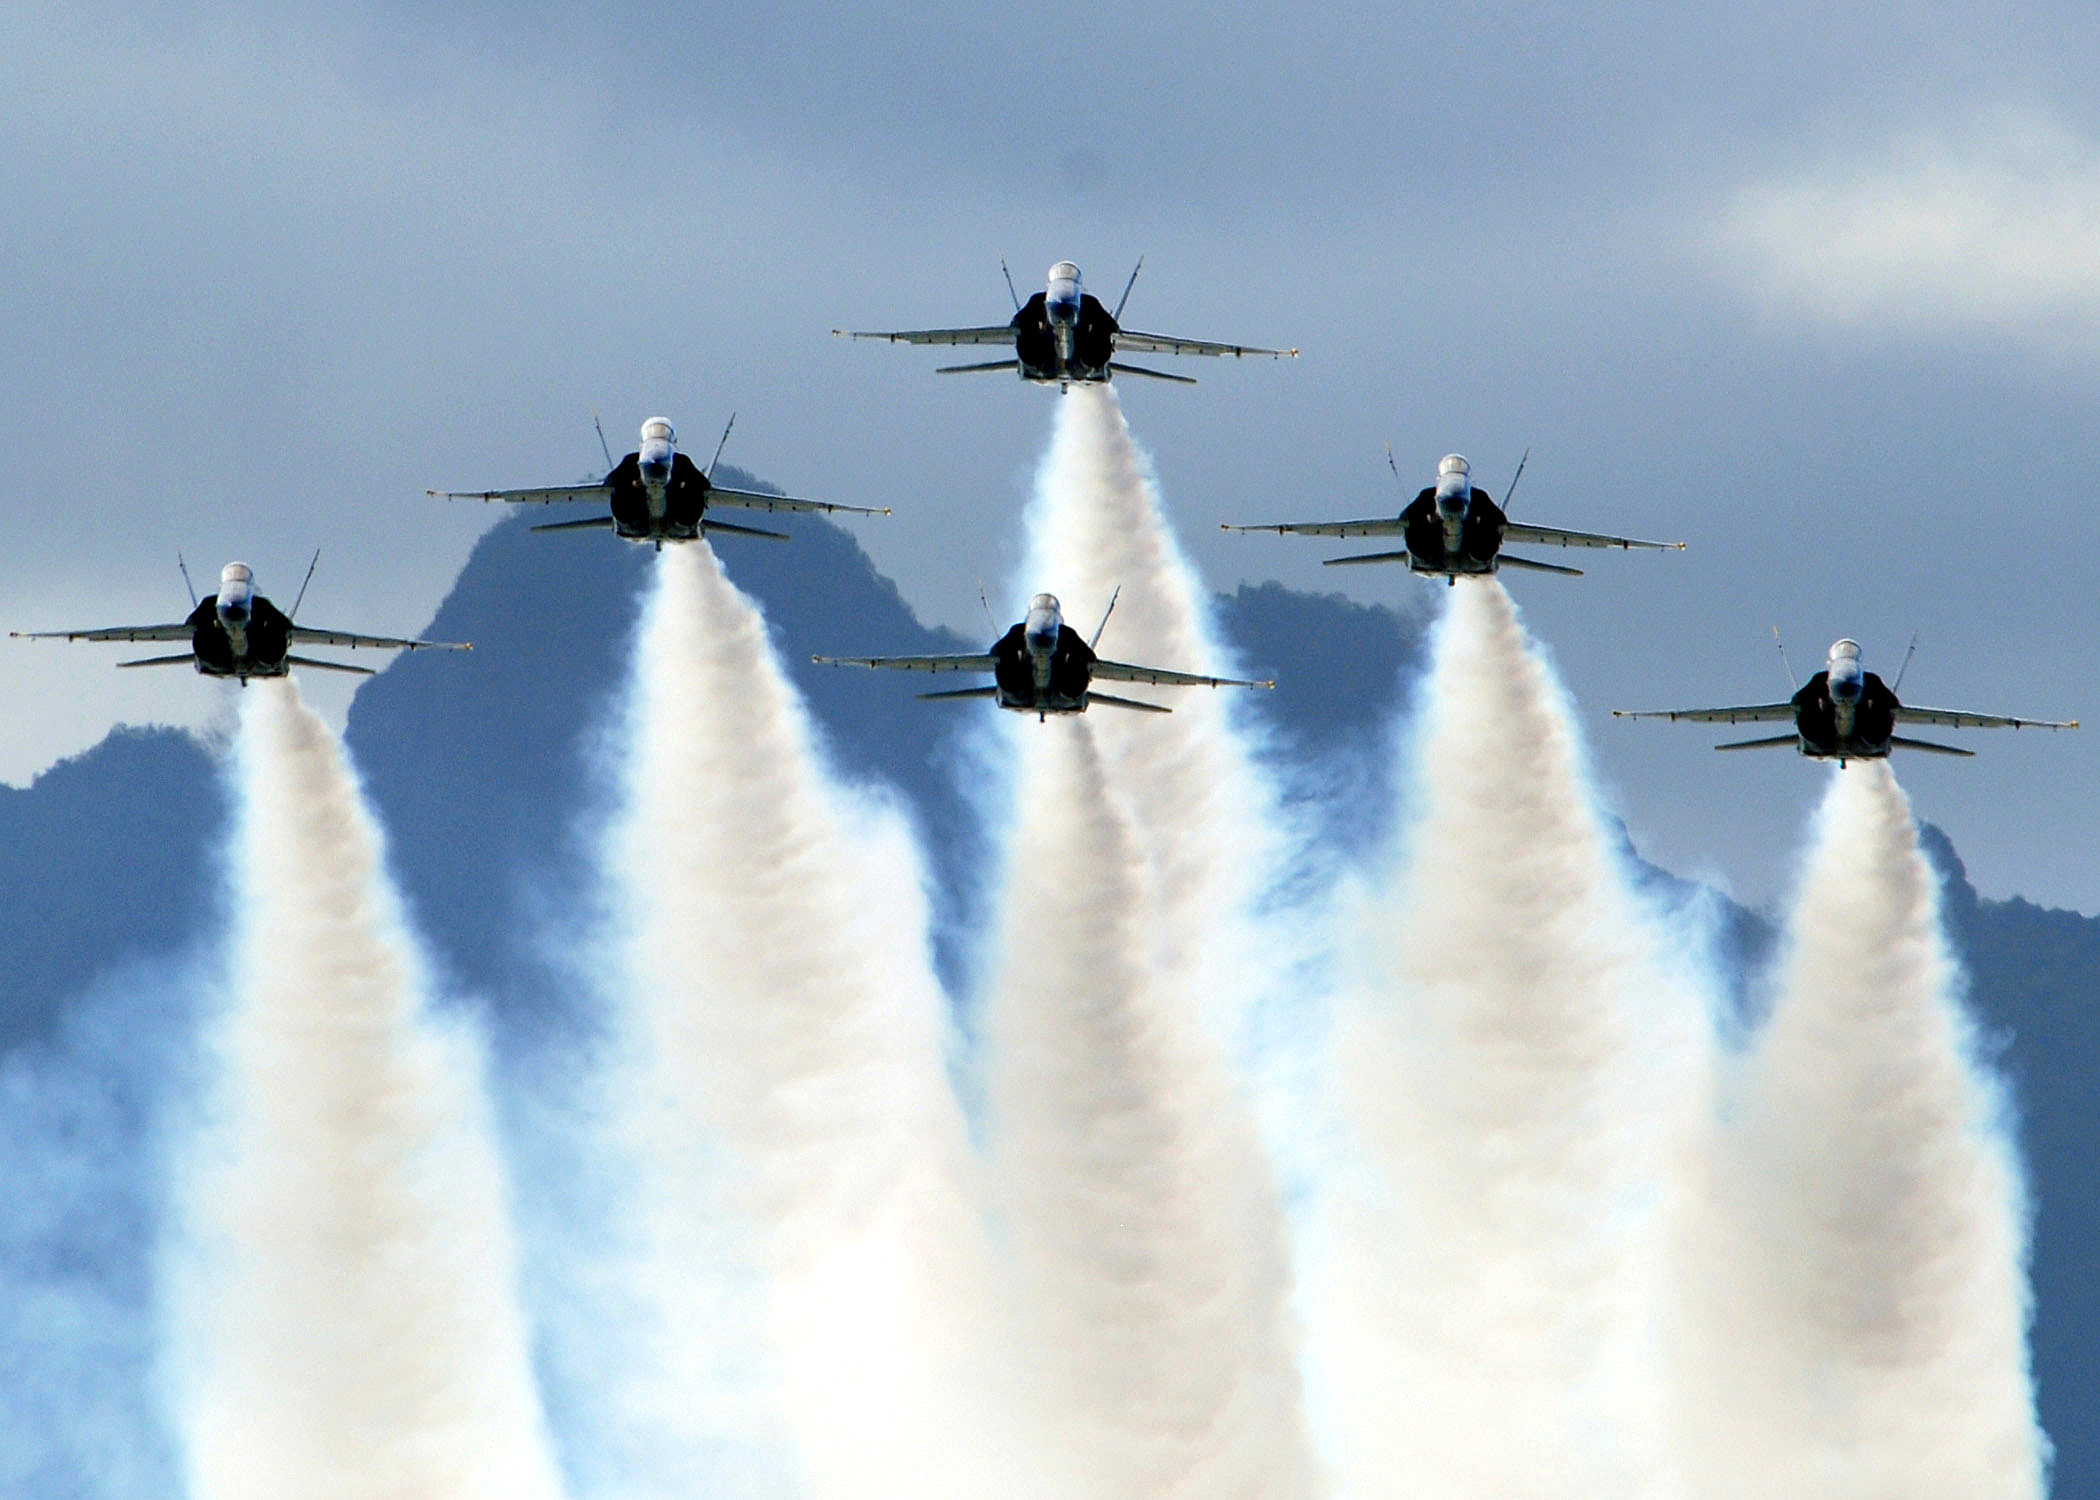 File:Blue Angels on Delta Formation.jpg - Wikimedia Commons